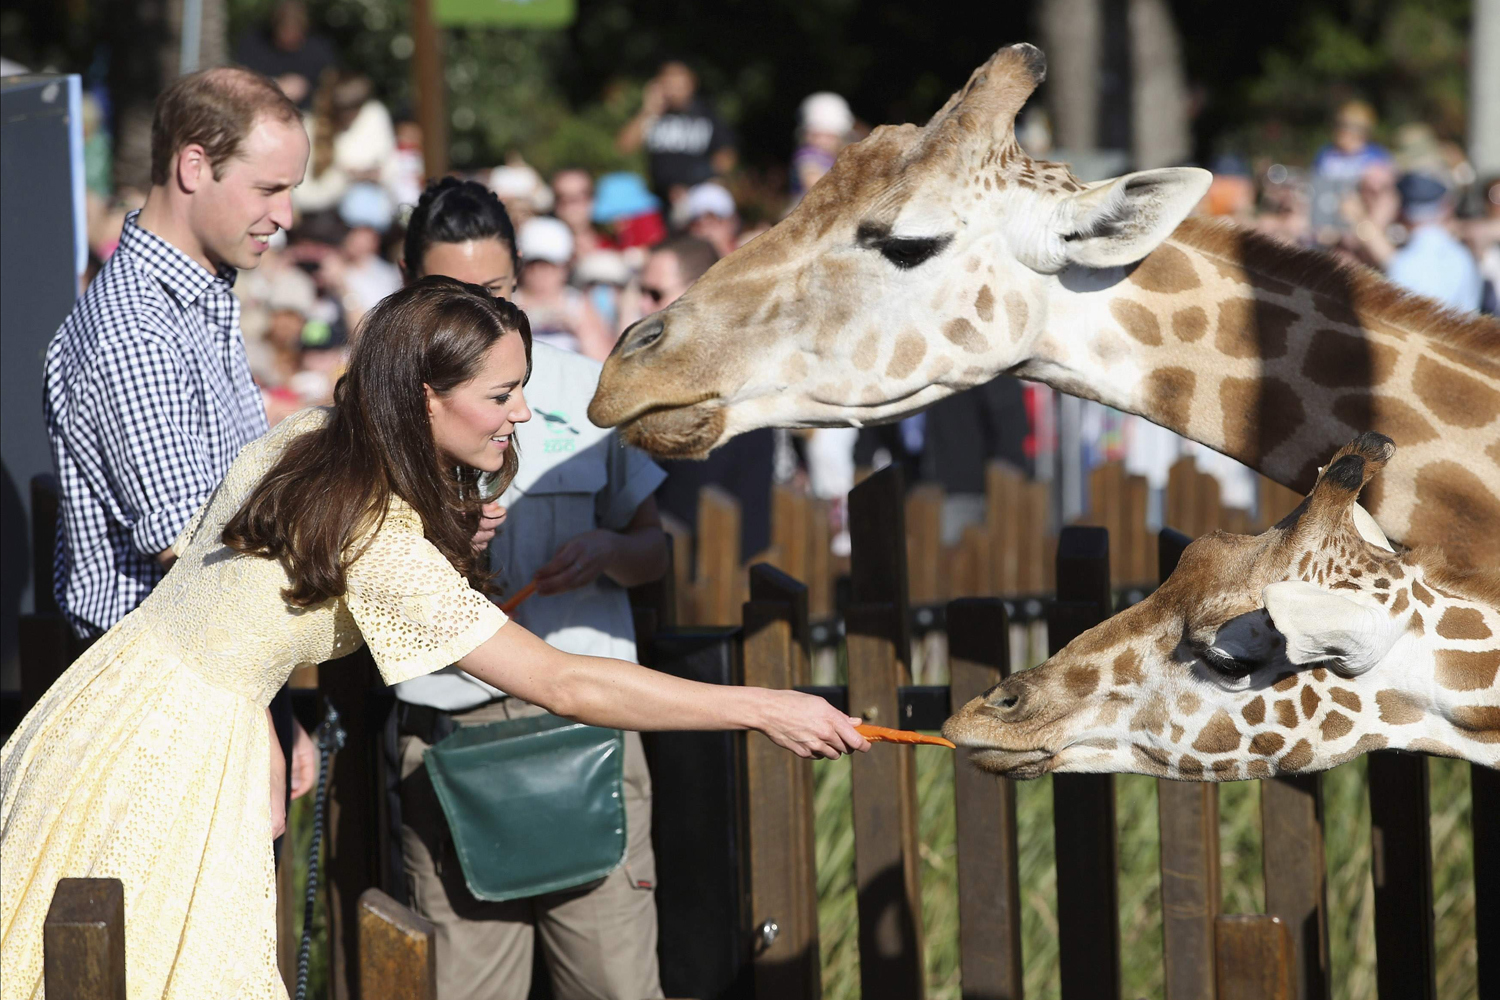 Prince William and Catherine, Duchess of Cambridge, feed giraffes at Sydney's Taronga Zoo April 20, 2014.